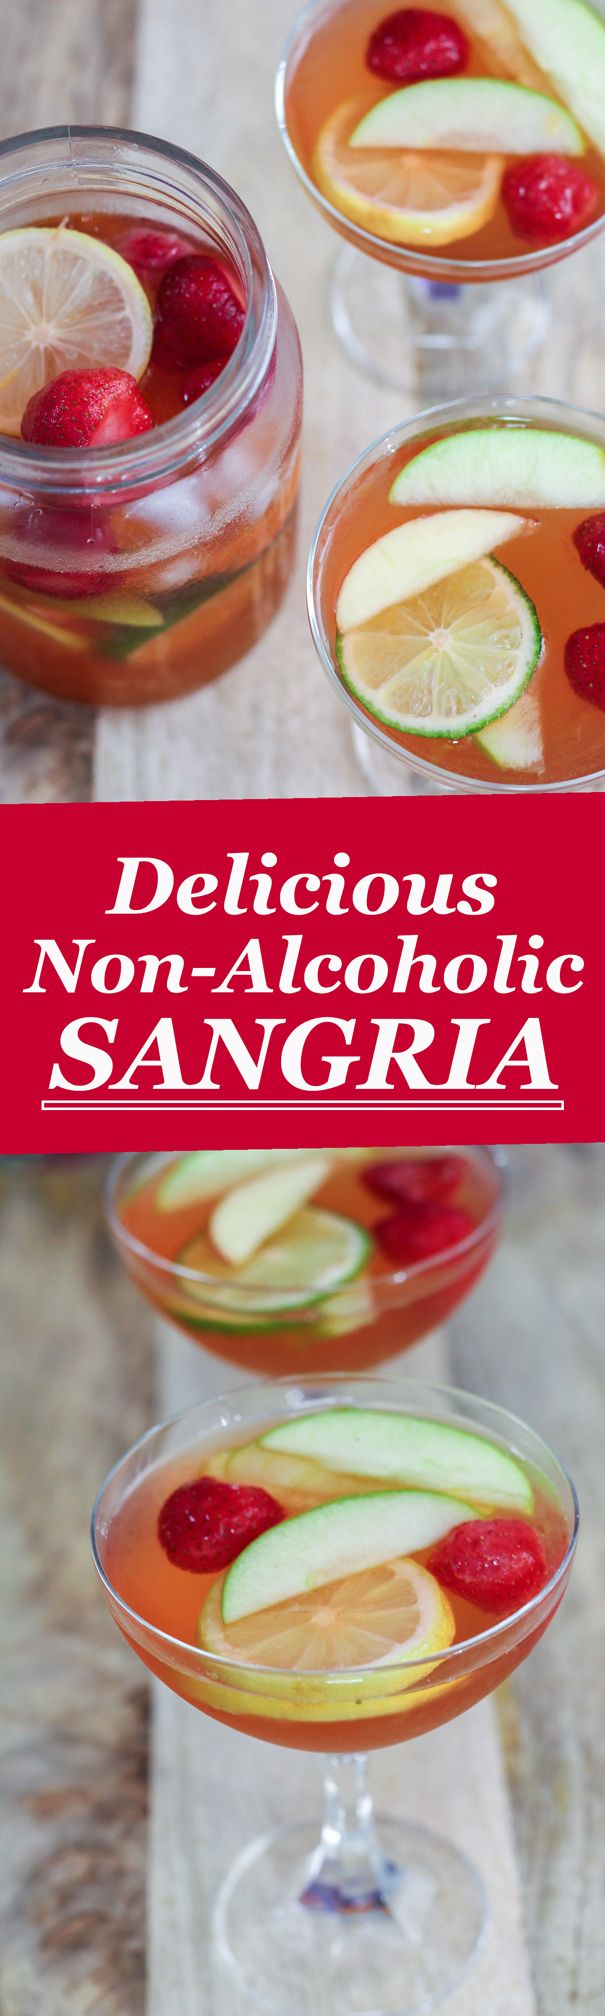 This Delicious Non Alcoholic Sangria Is The Perfect Beverage For Parties Or When You Have Guests